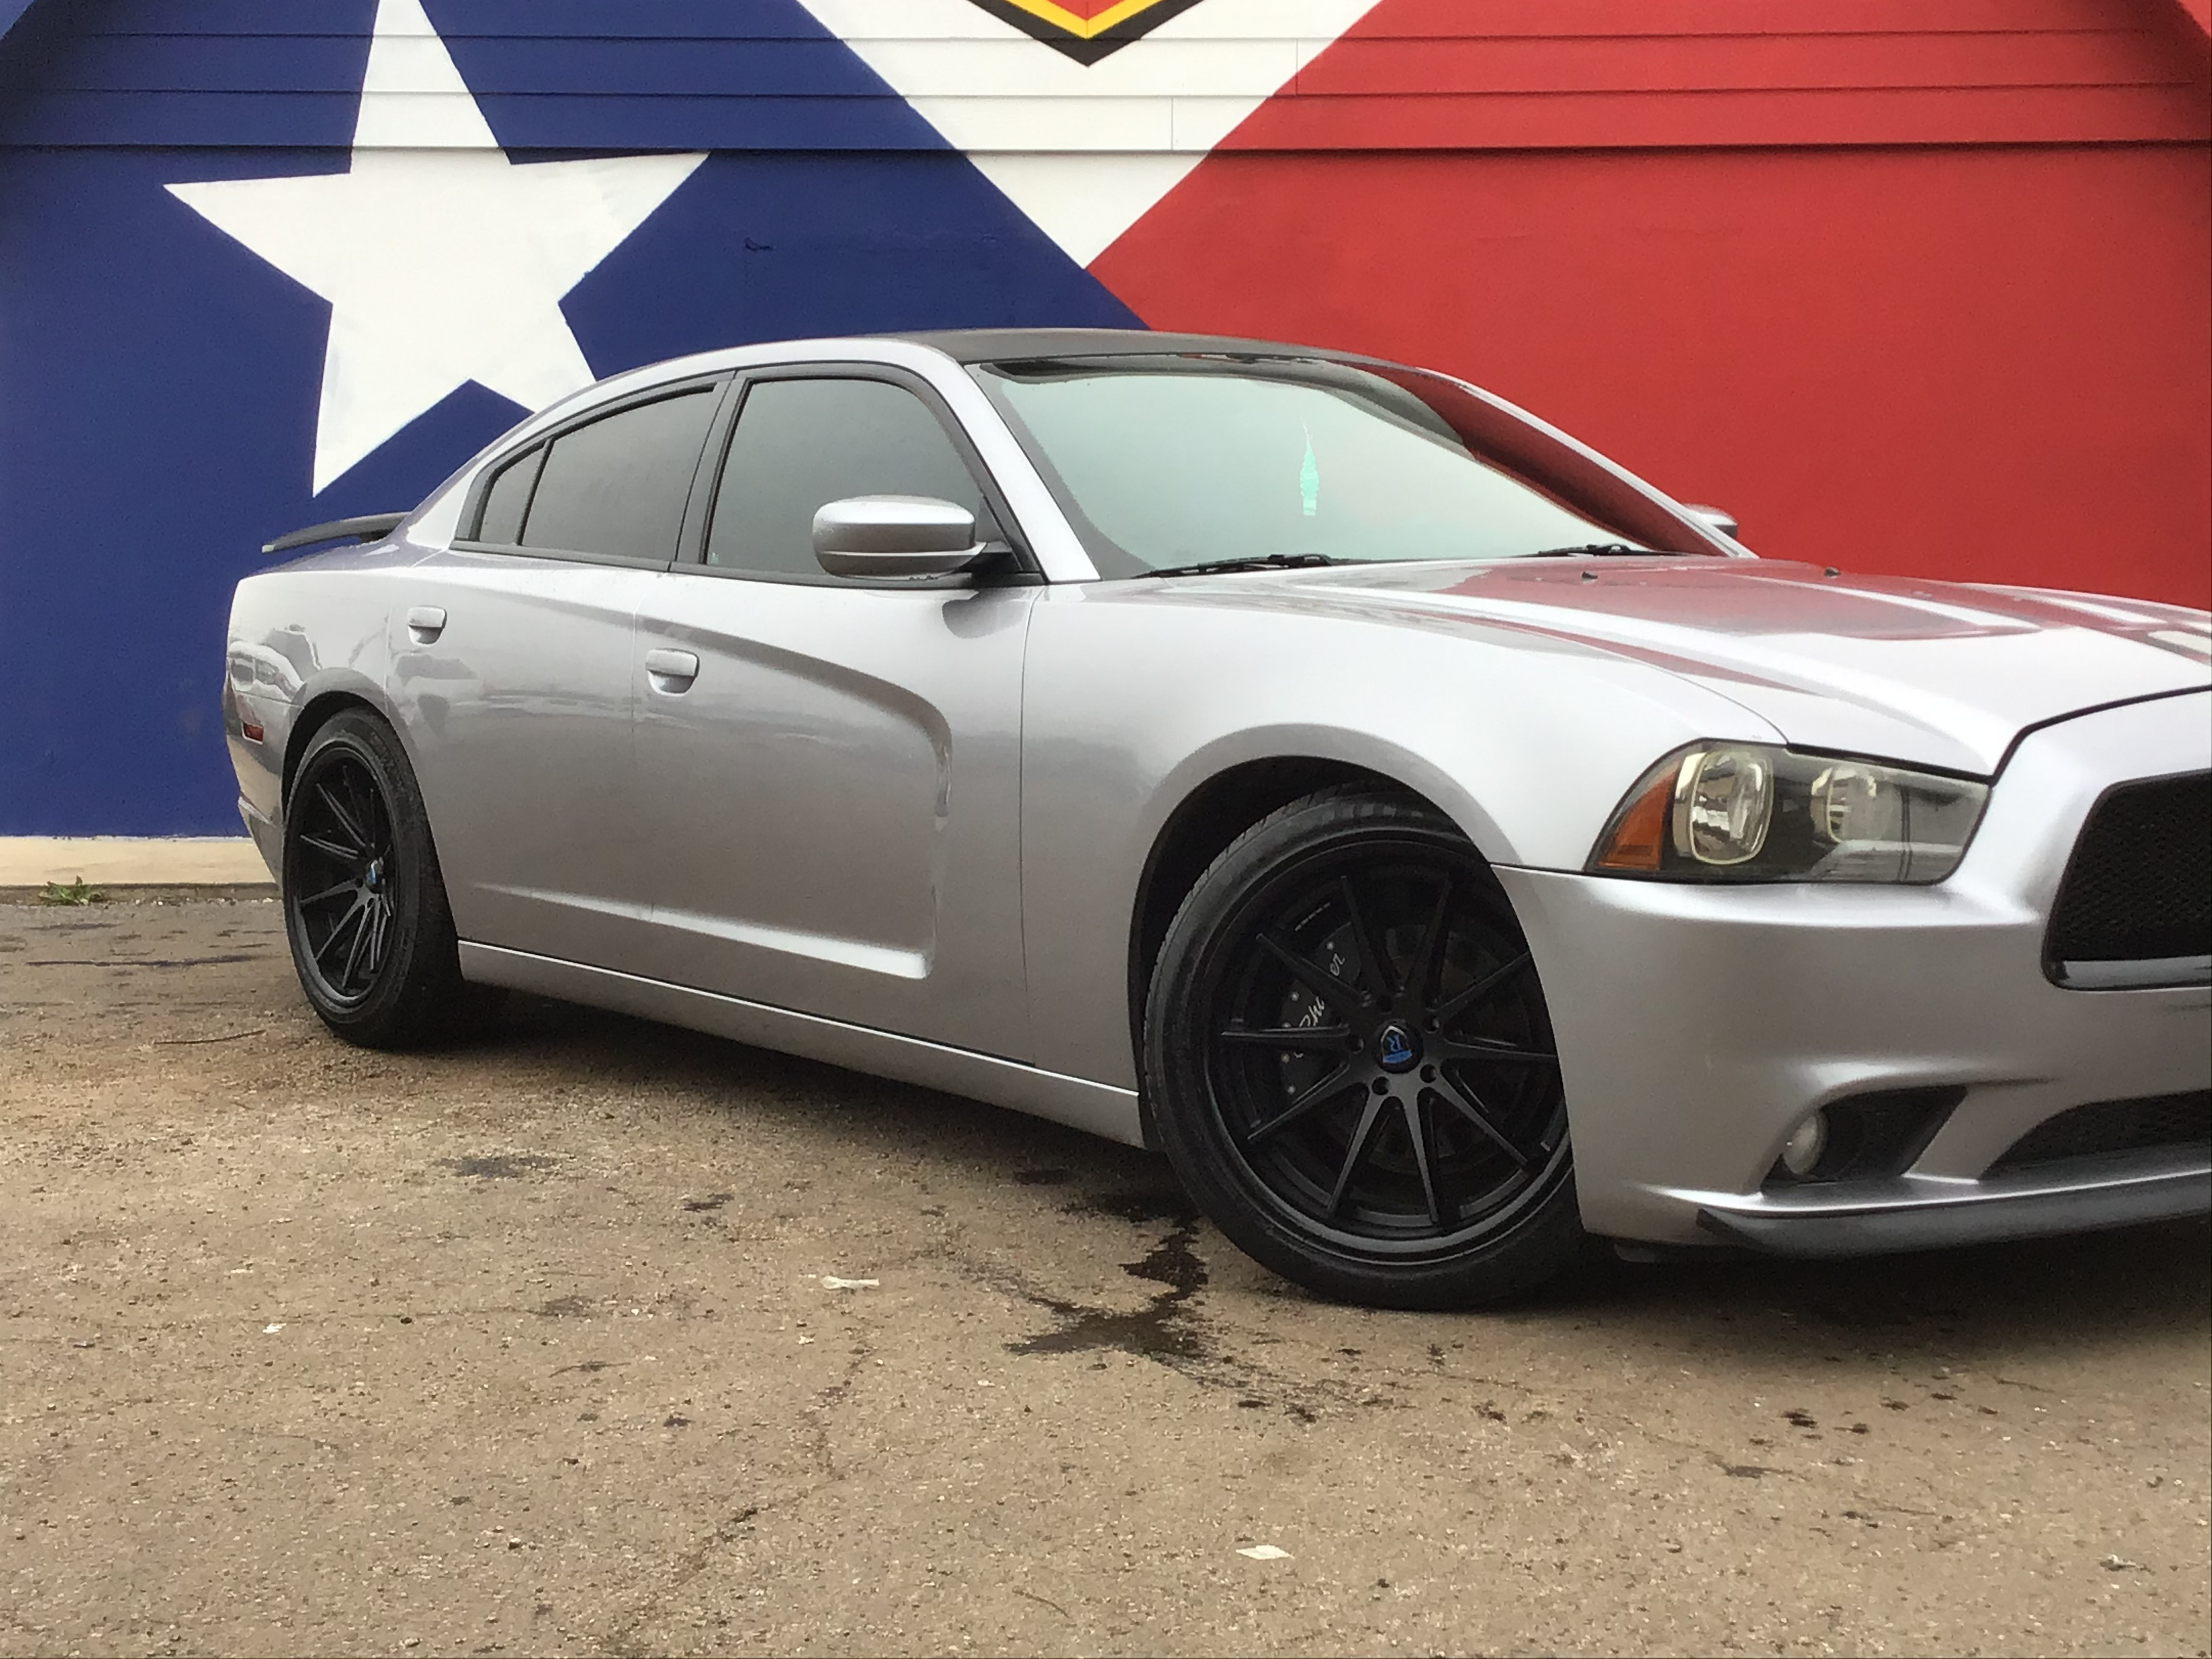 used vehicle - Sedan DODGE CHARGER 2013